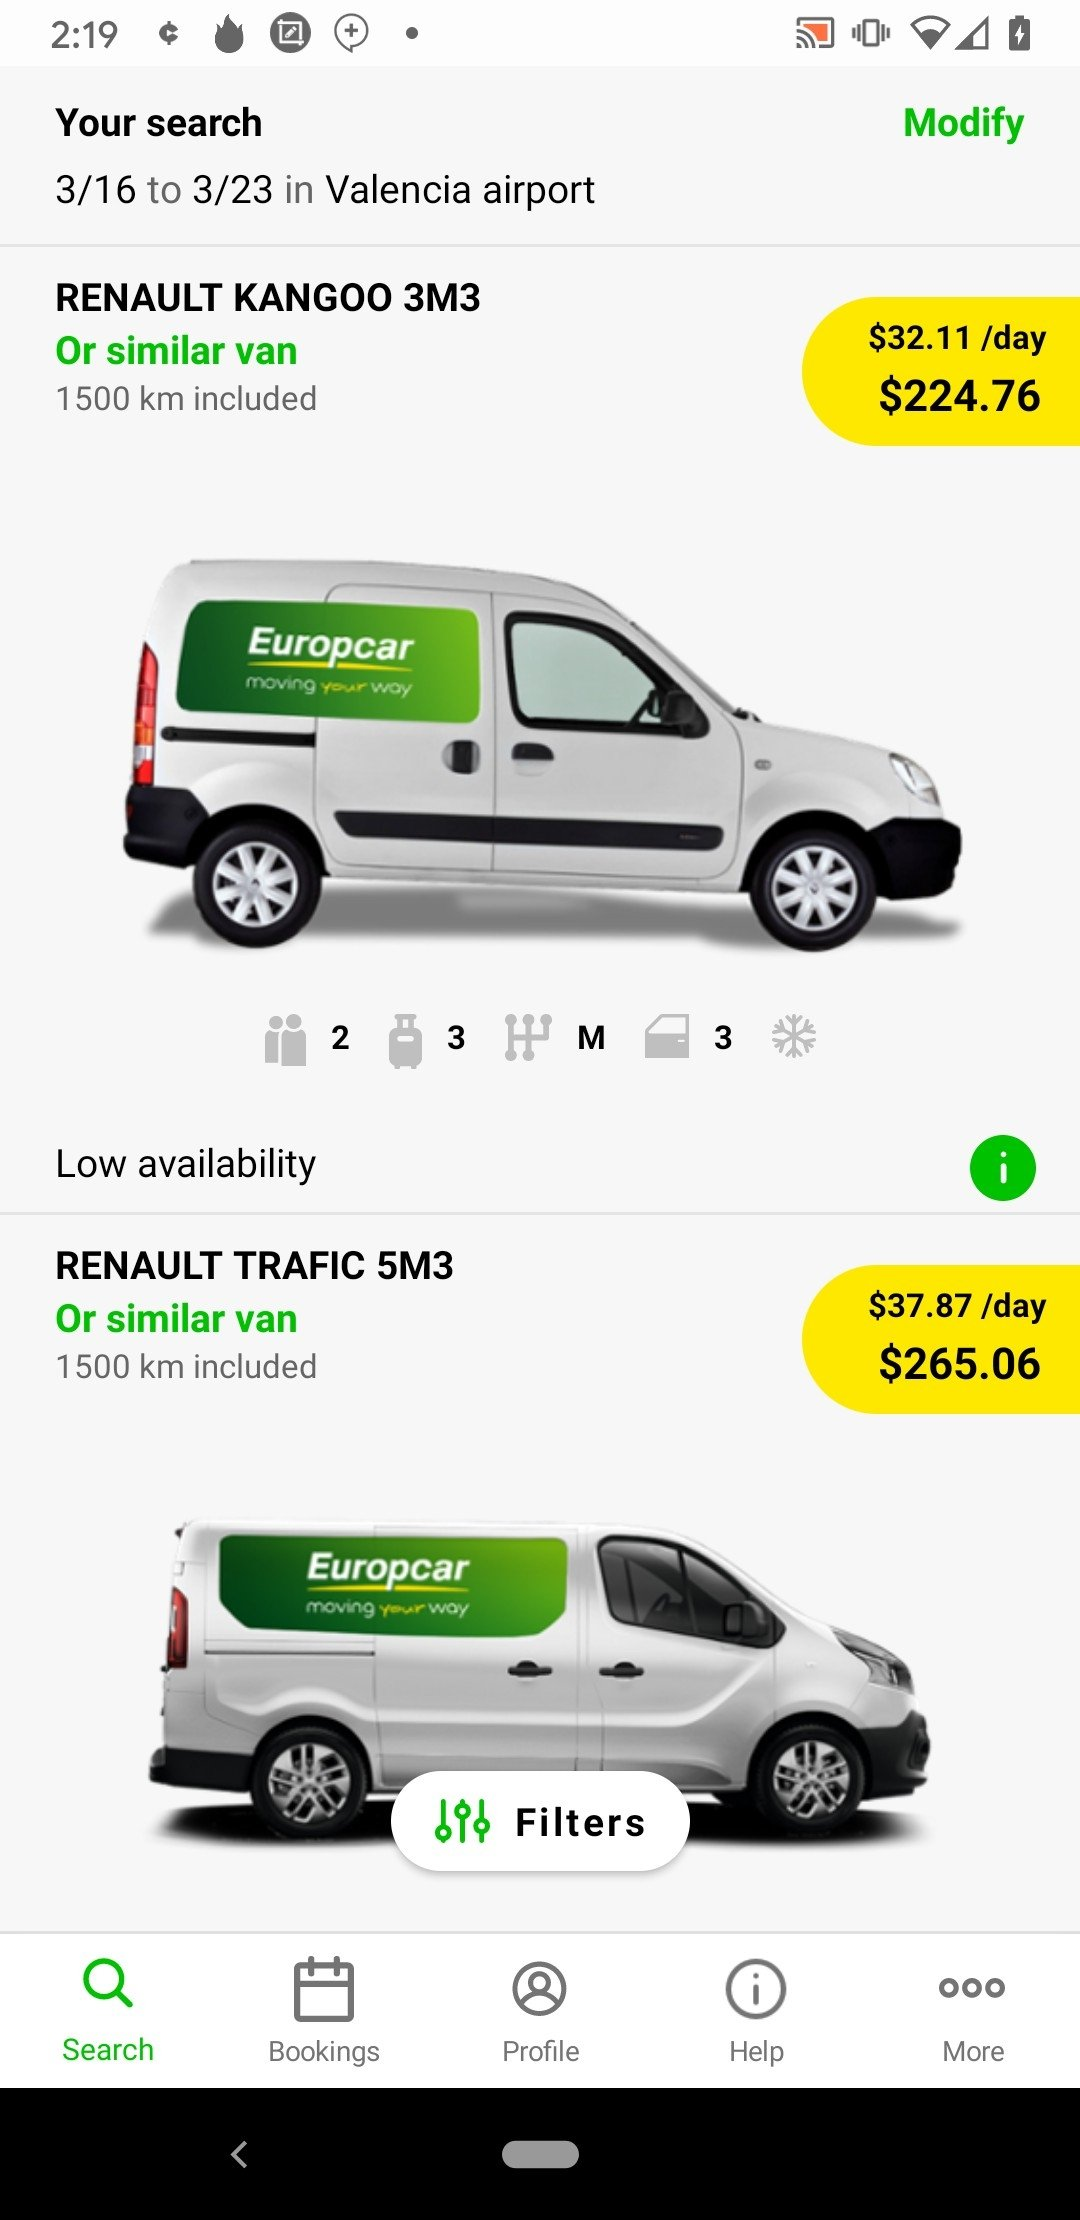 Europcar Android image 5